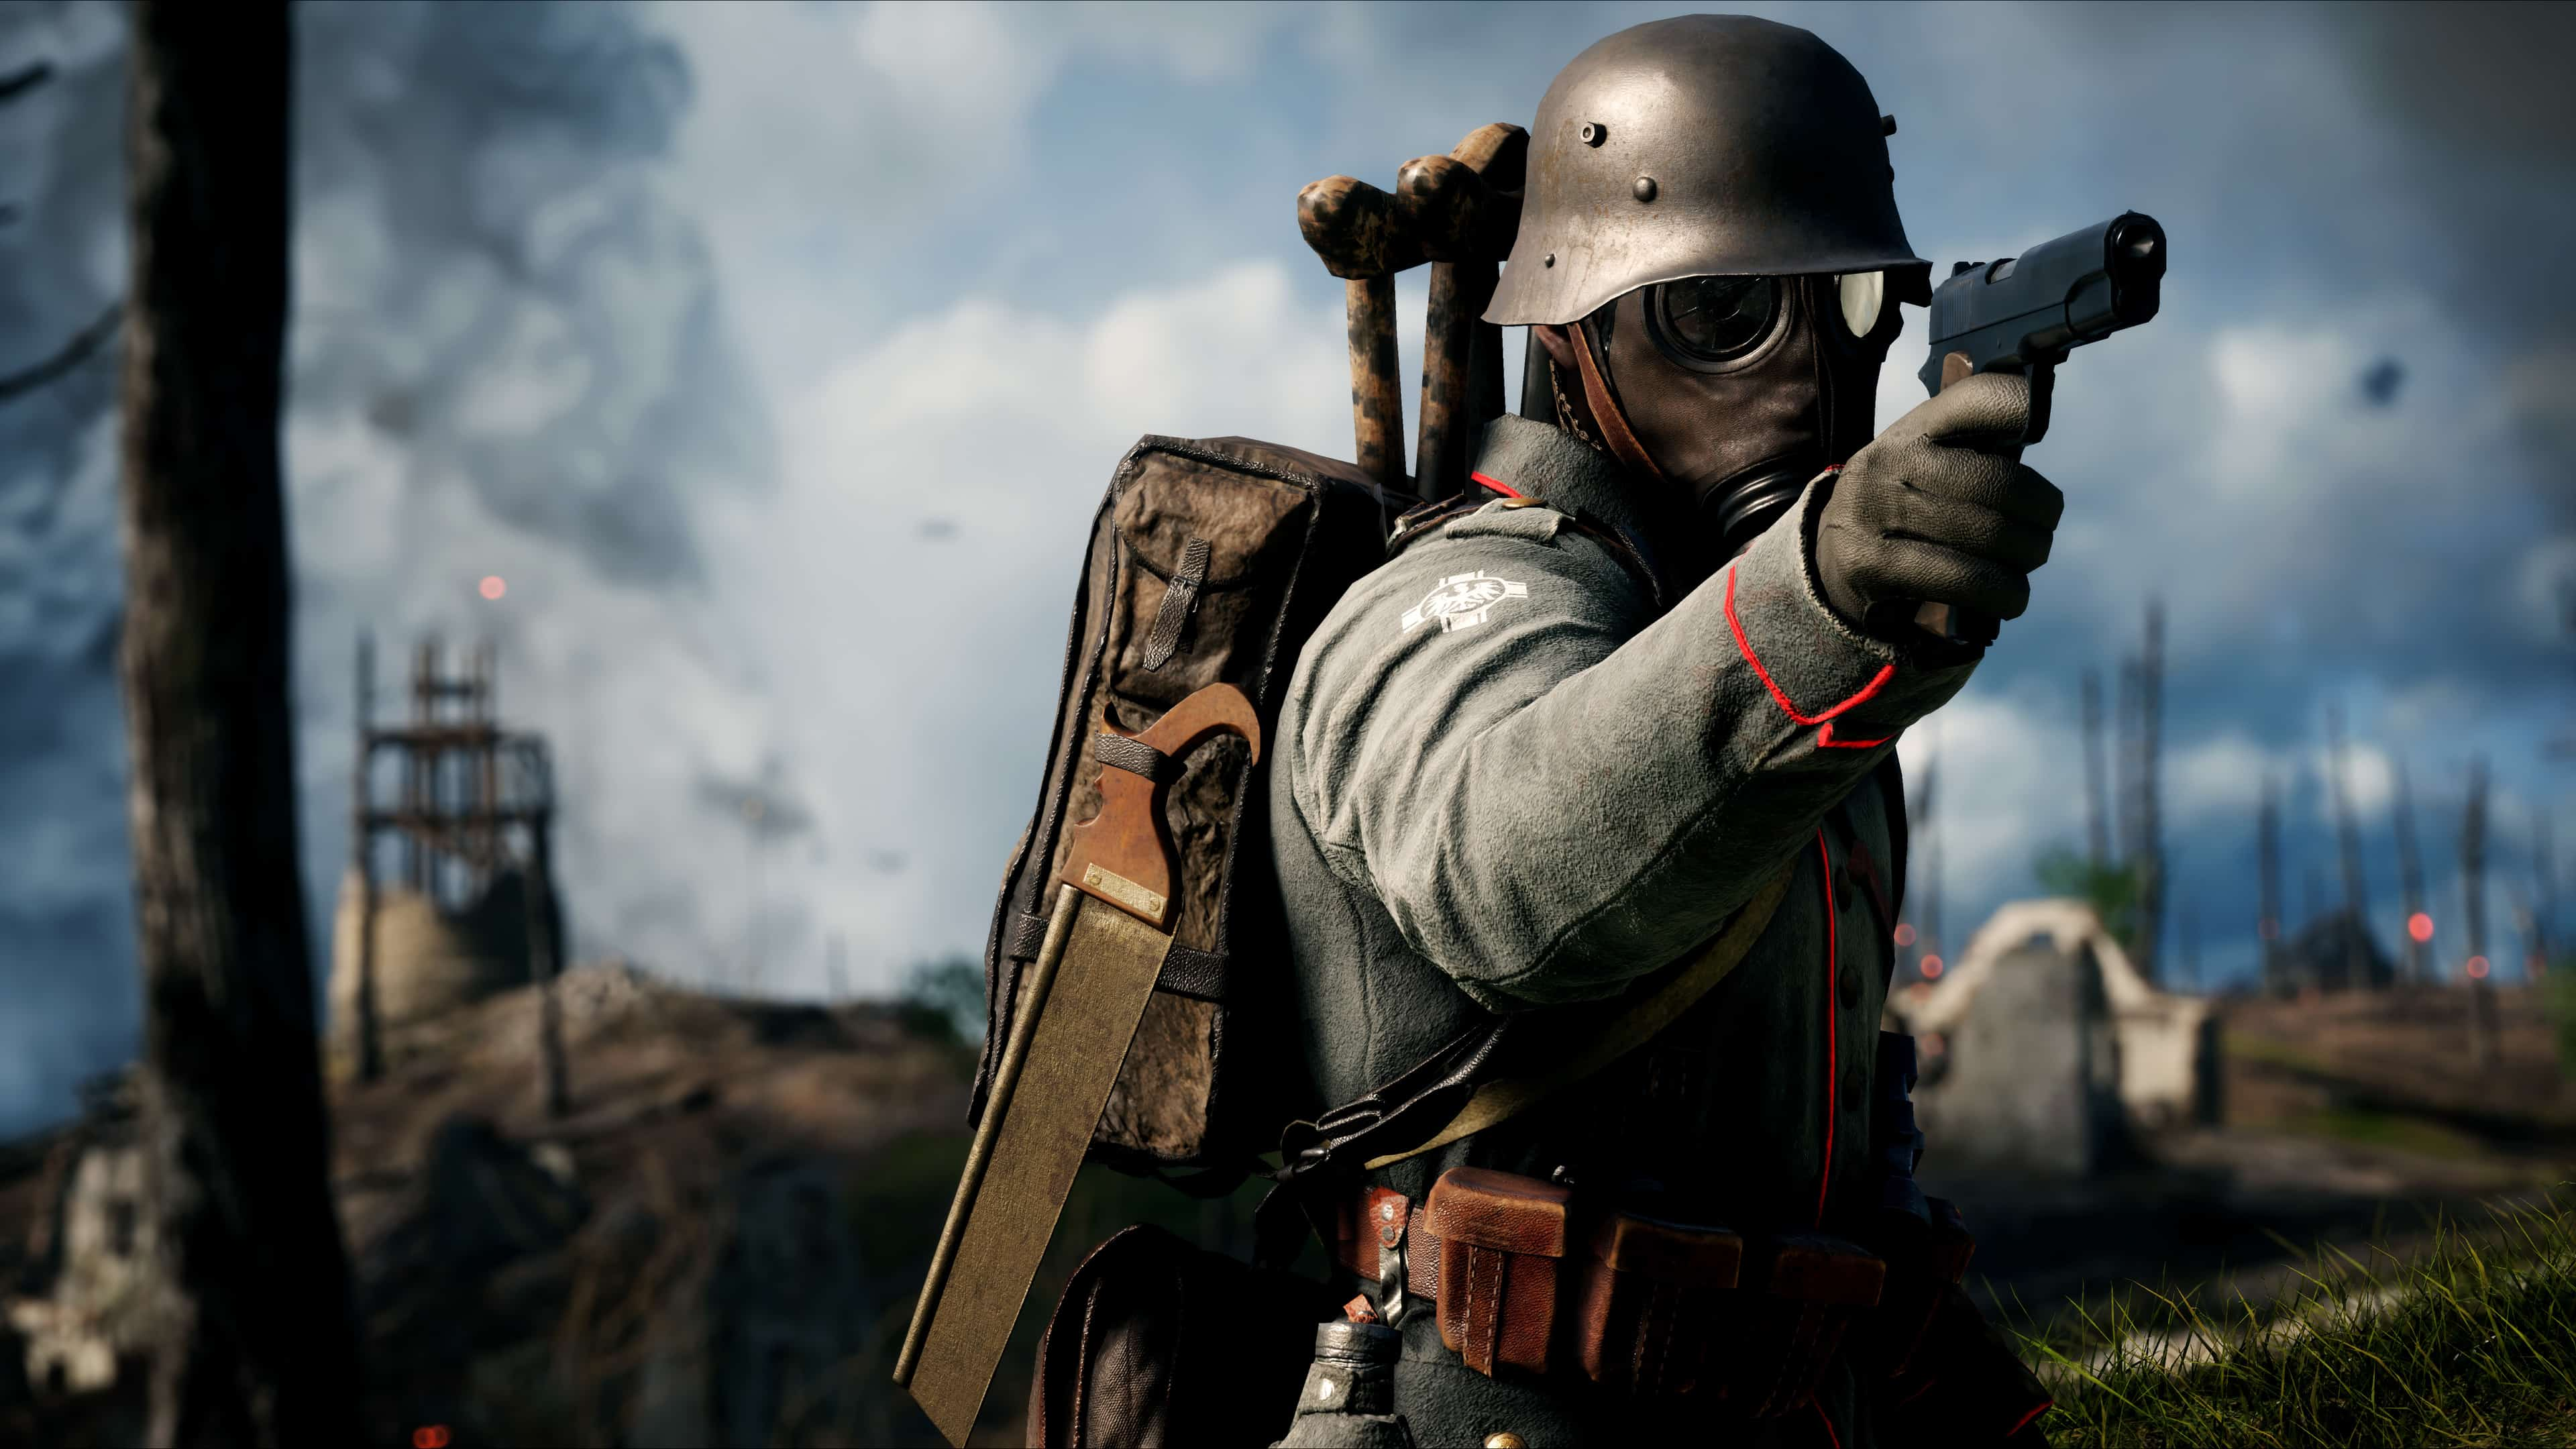 Battlefield 1 German Soldier Uhd 4k Wallpaper Pixelz